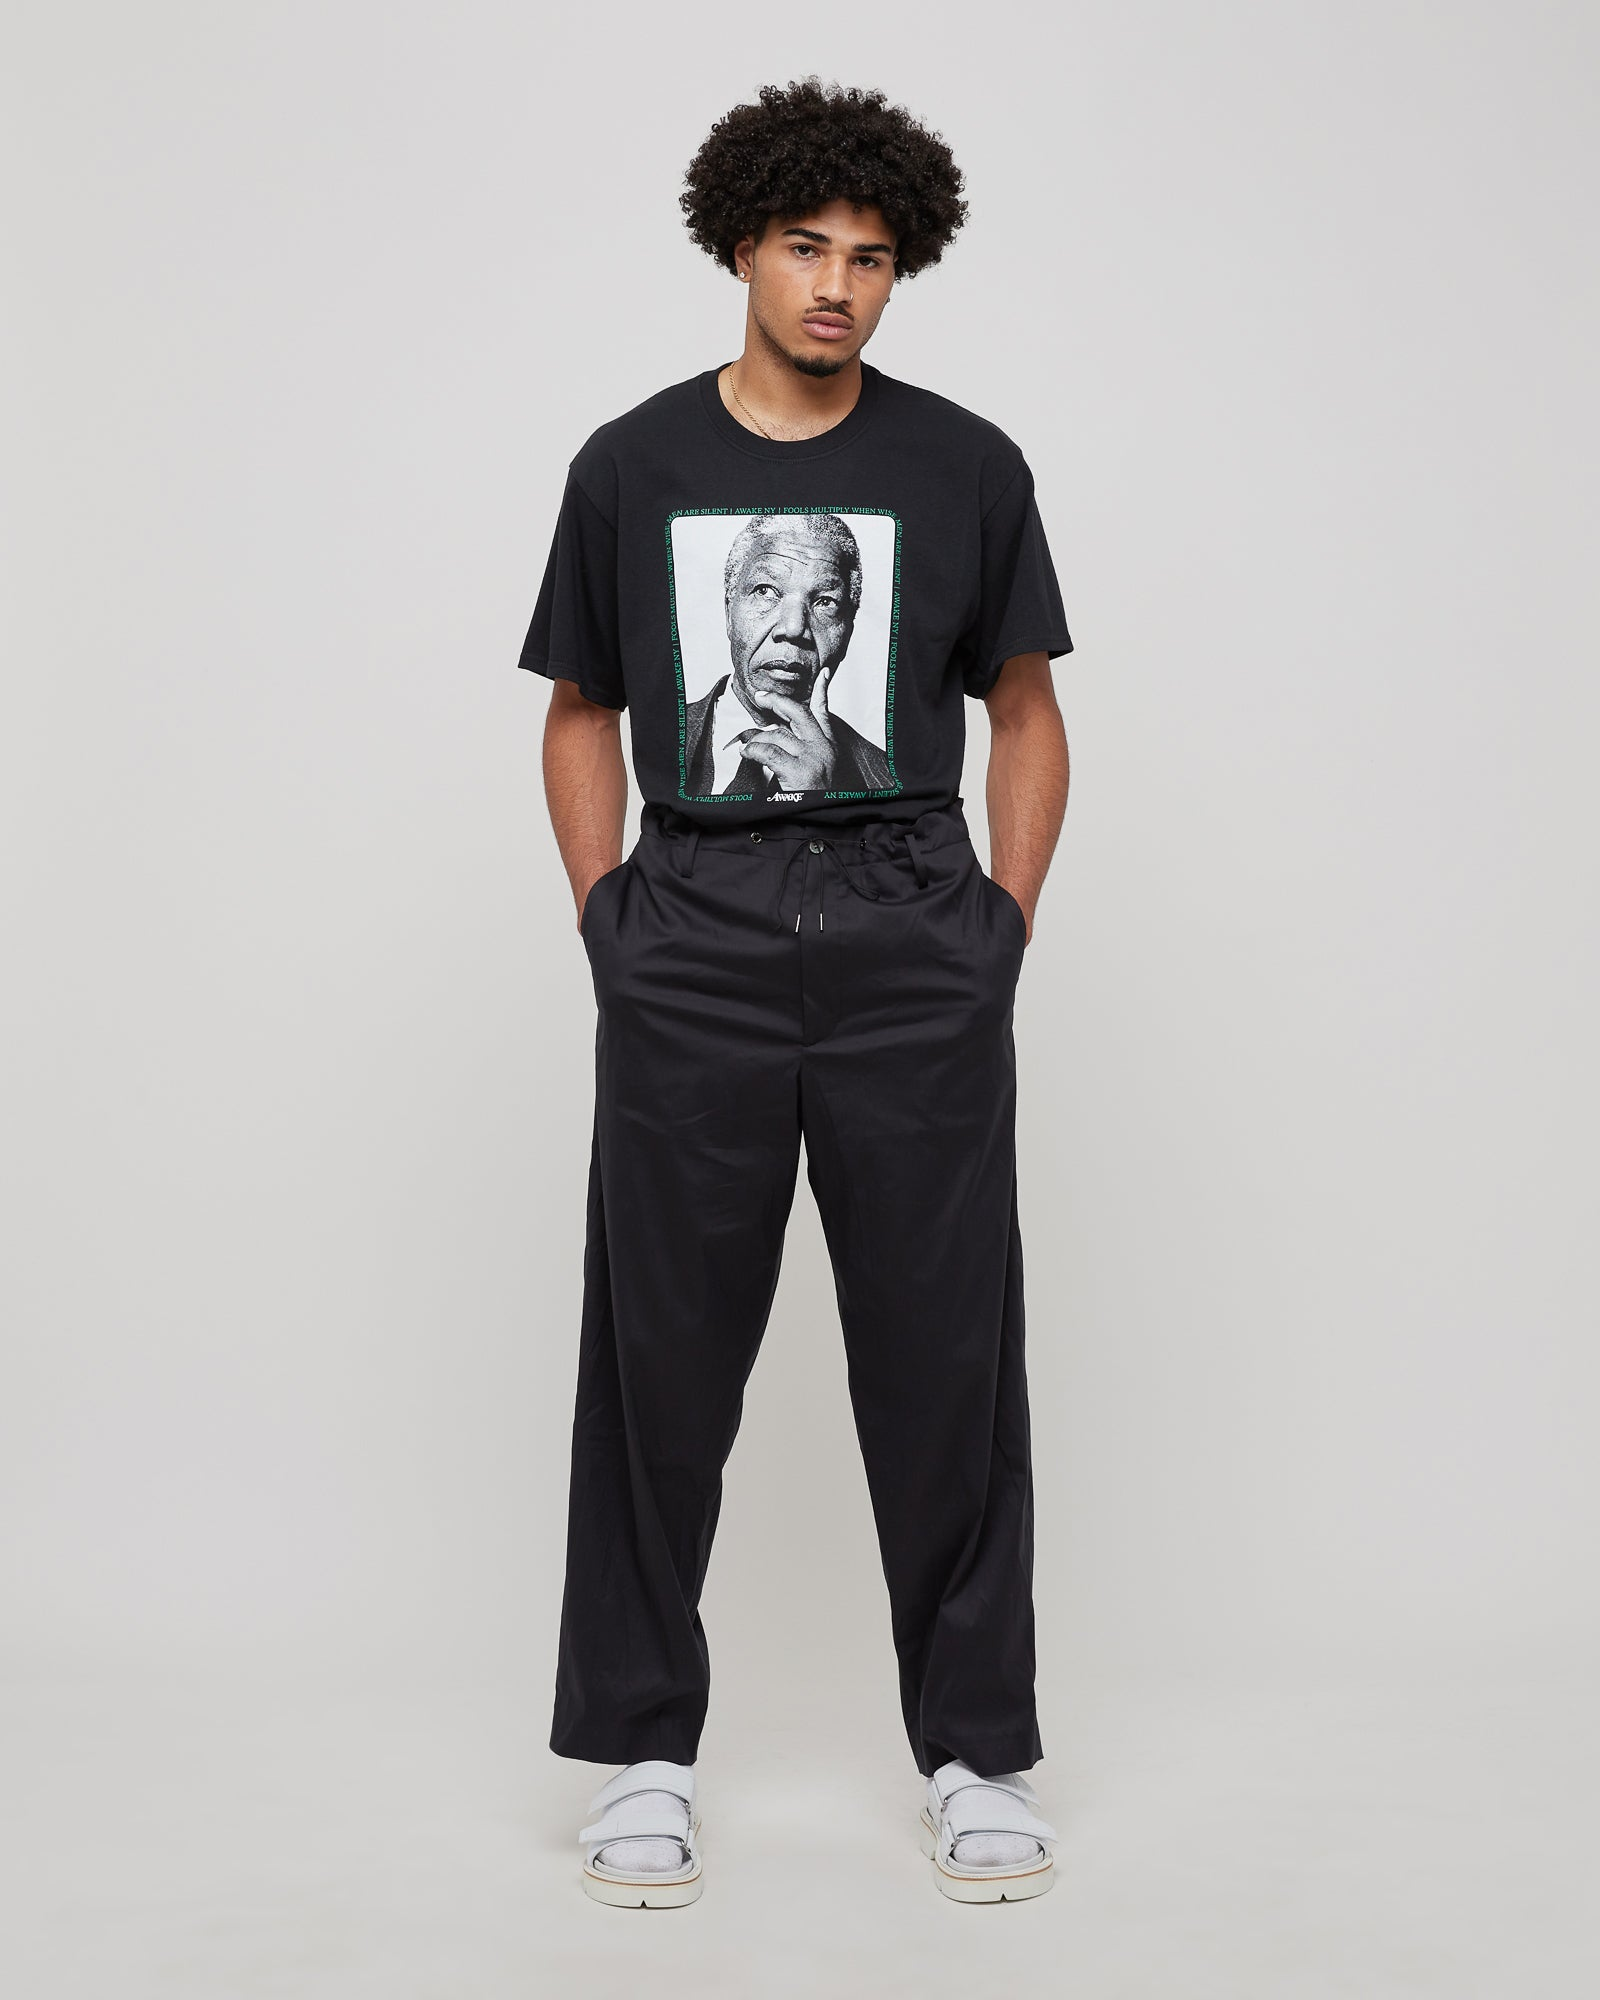 Mandela T-Shirt in Black